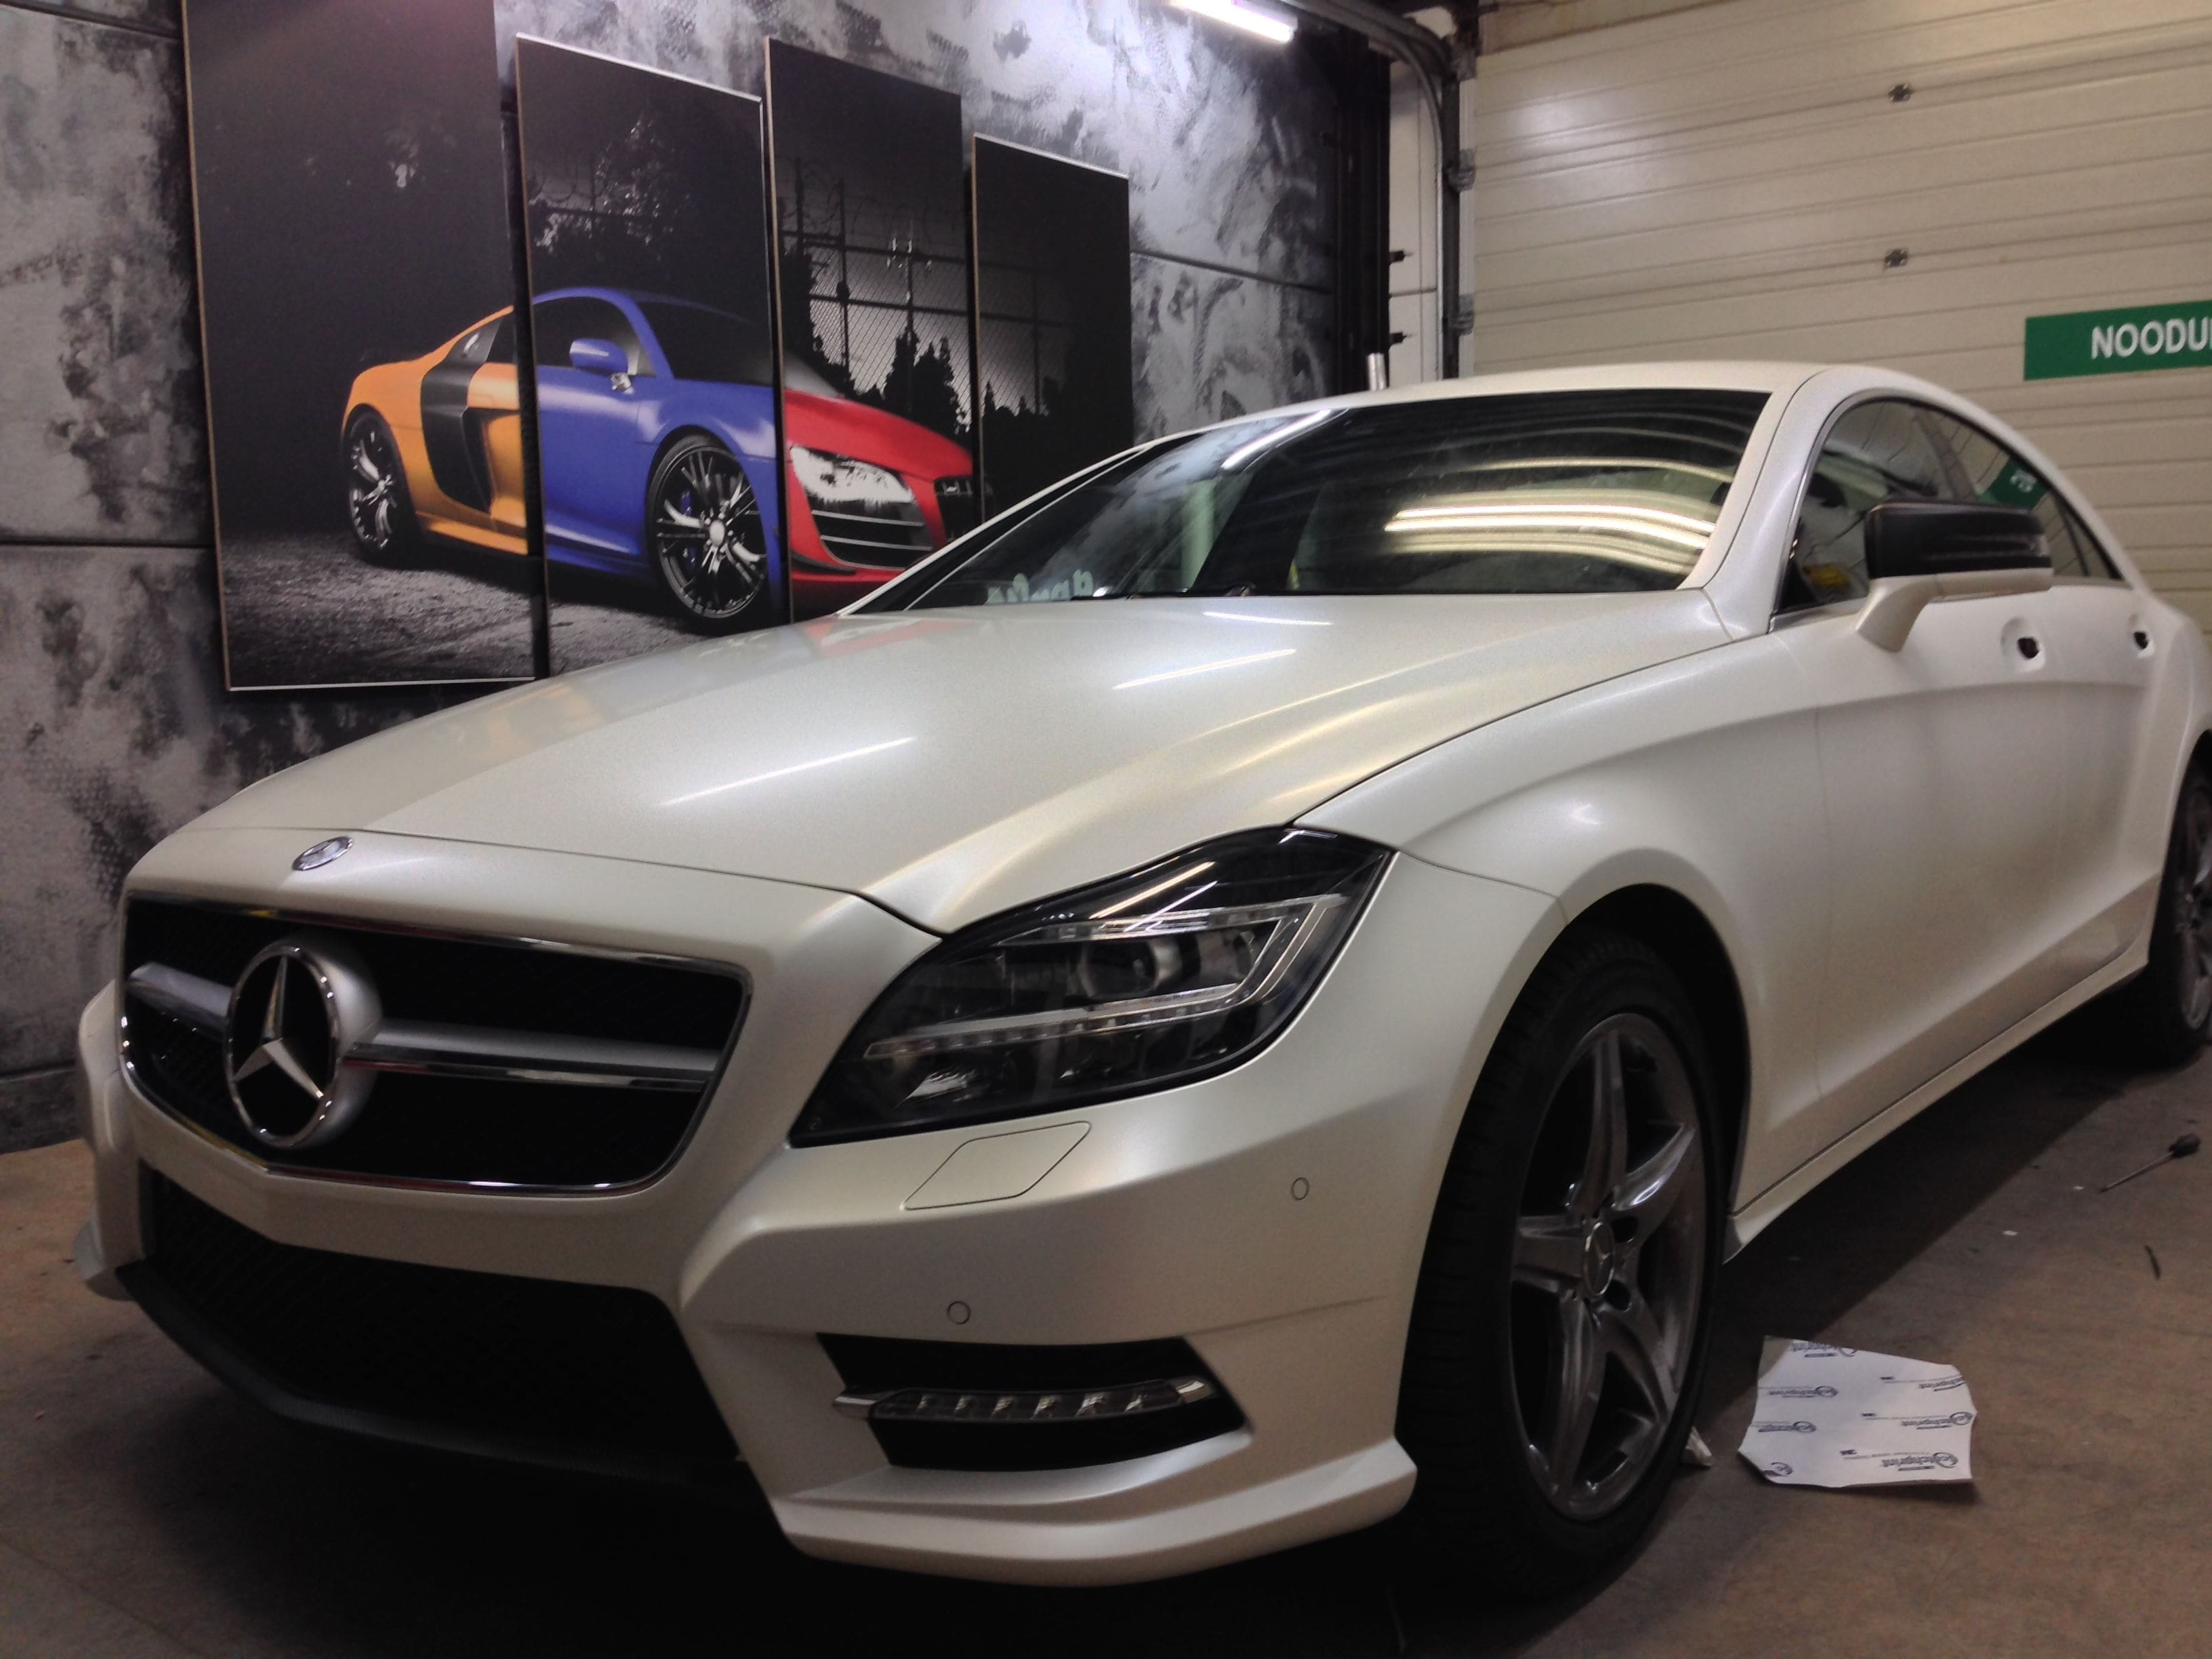 Mercedes CLS met White Satin Pearl Wrap, Carwrapping door Wrapmyride.nu Foto-nr:6197, ©2020